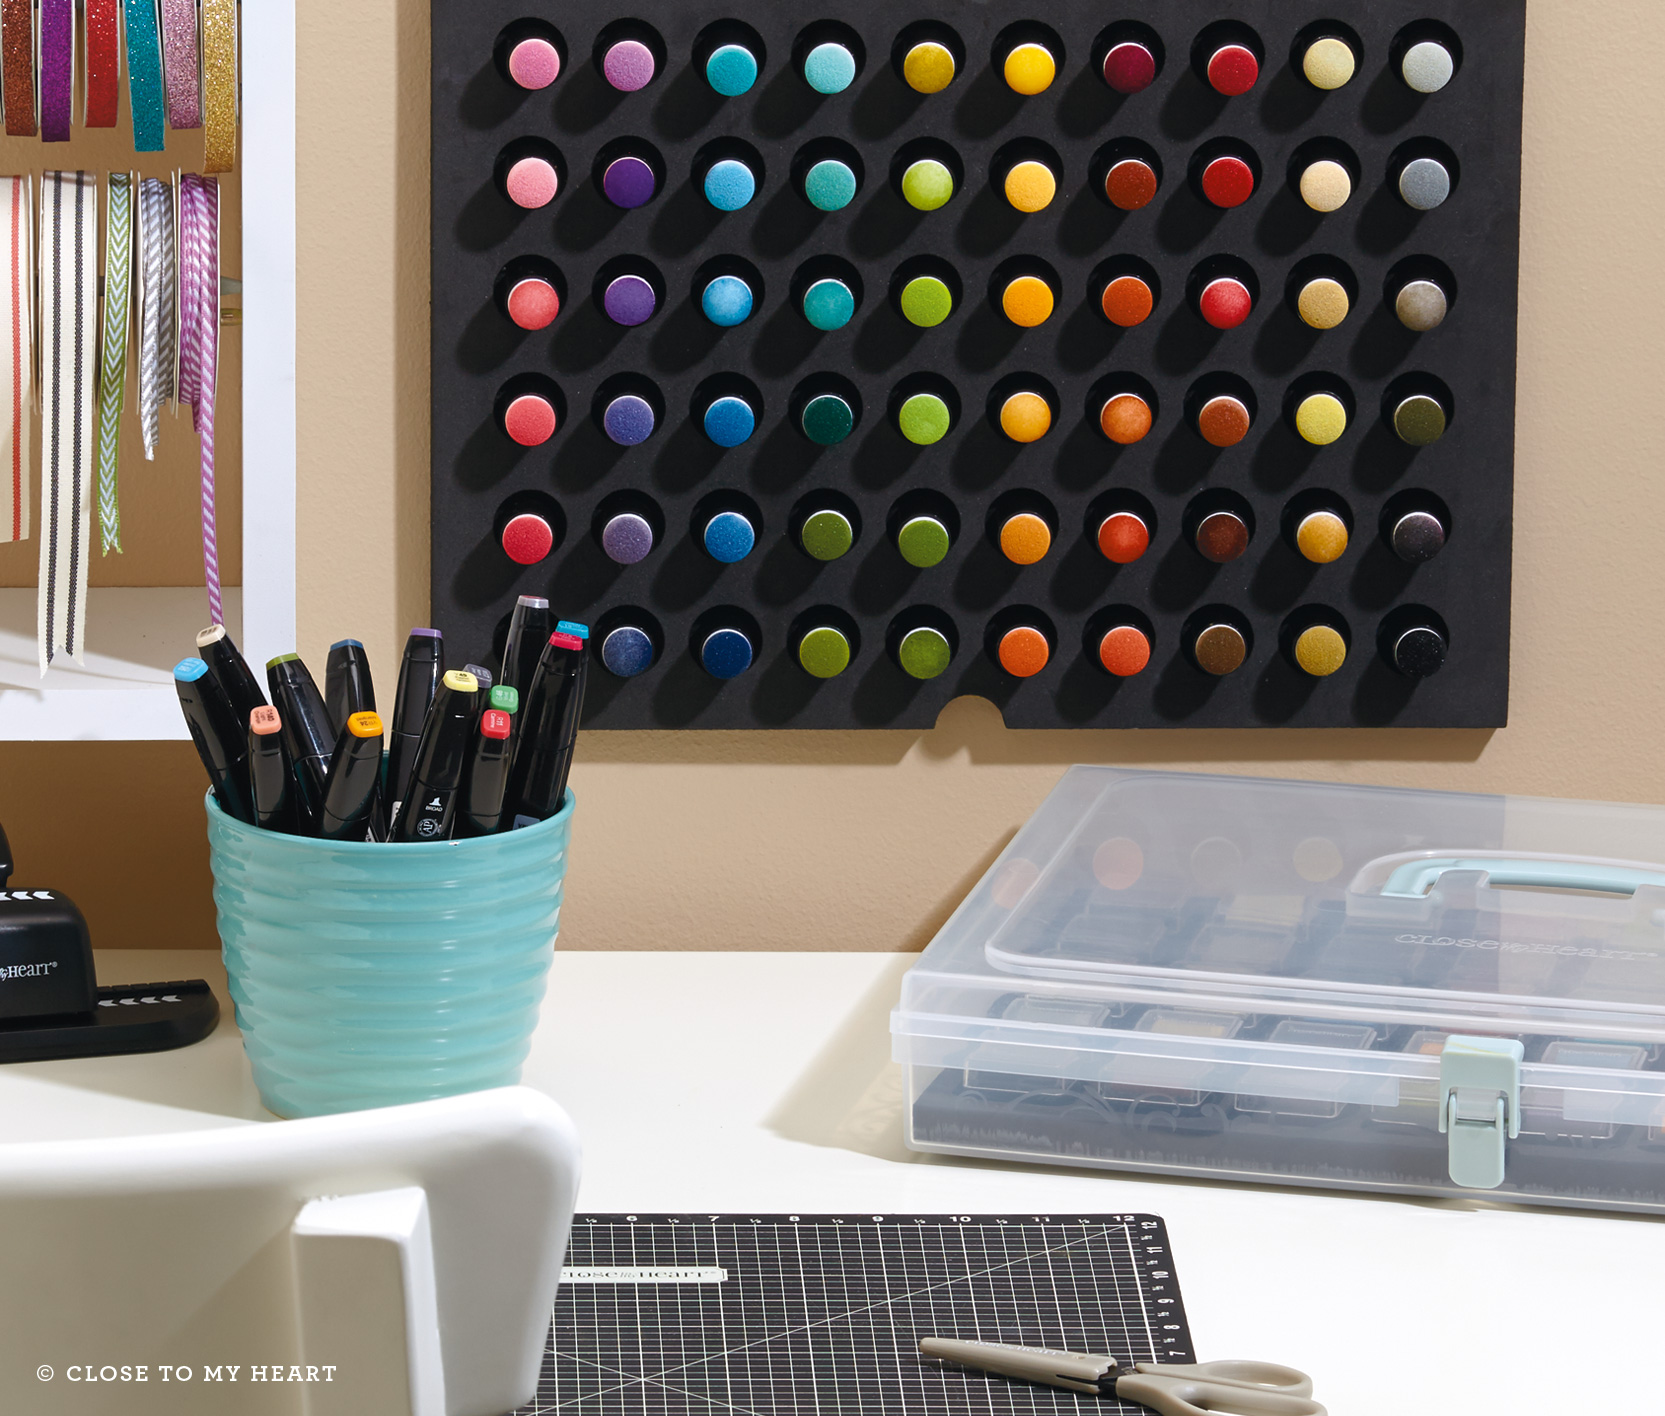 Craft Storage Ideas and CTMH Storage Solutions & Scrapbooking Sue: Craft Storage Ideas and CTMH Storage Solutions